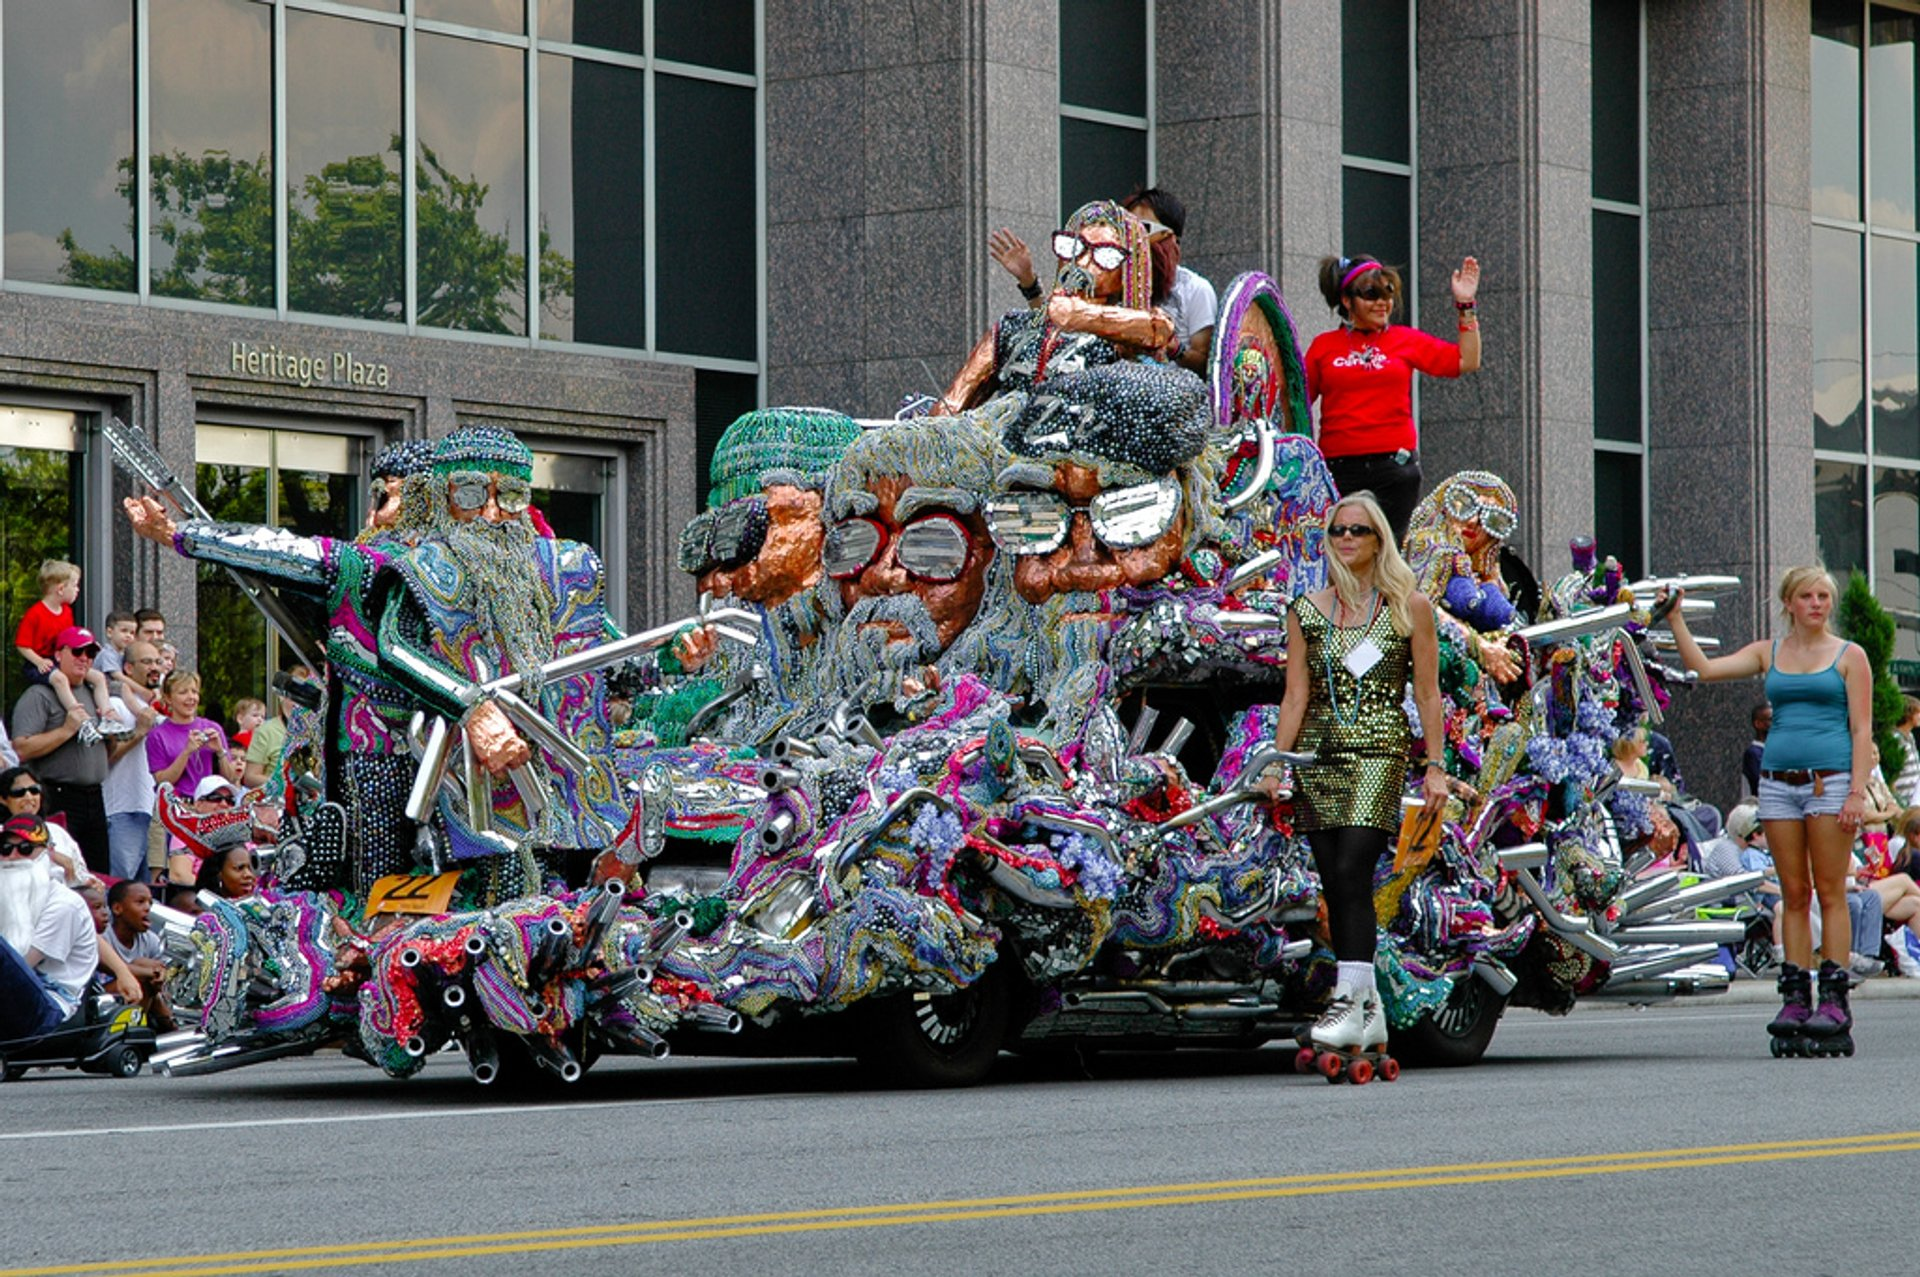 Houston Art Car Parade in Texas 2019 - Best Time